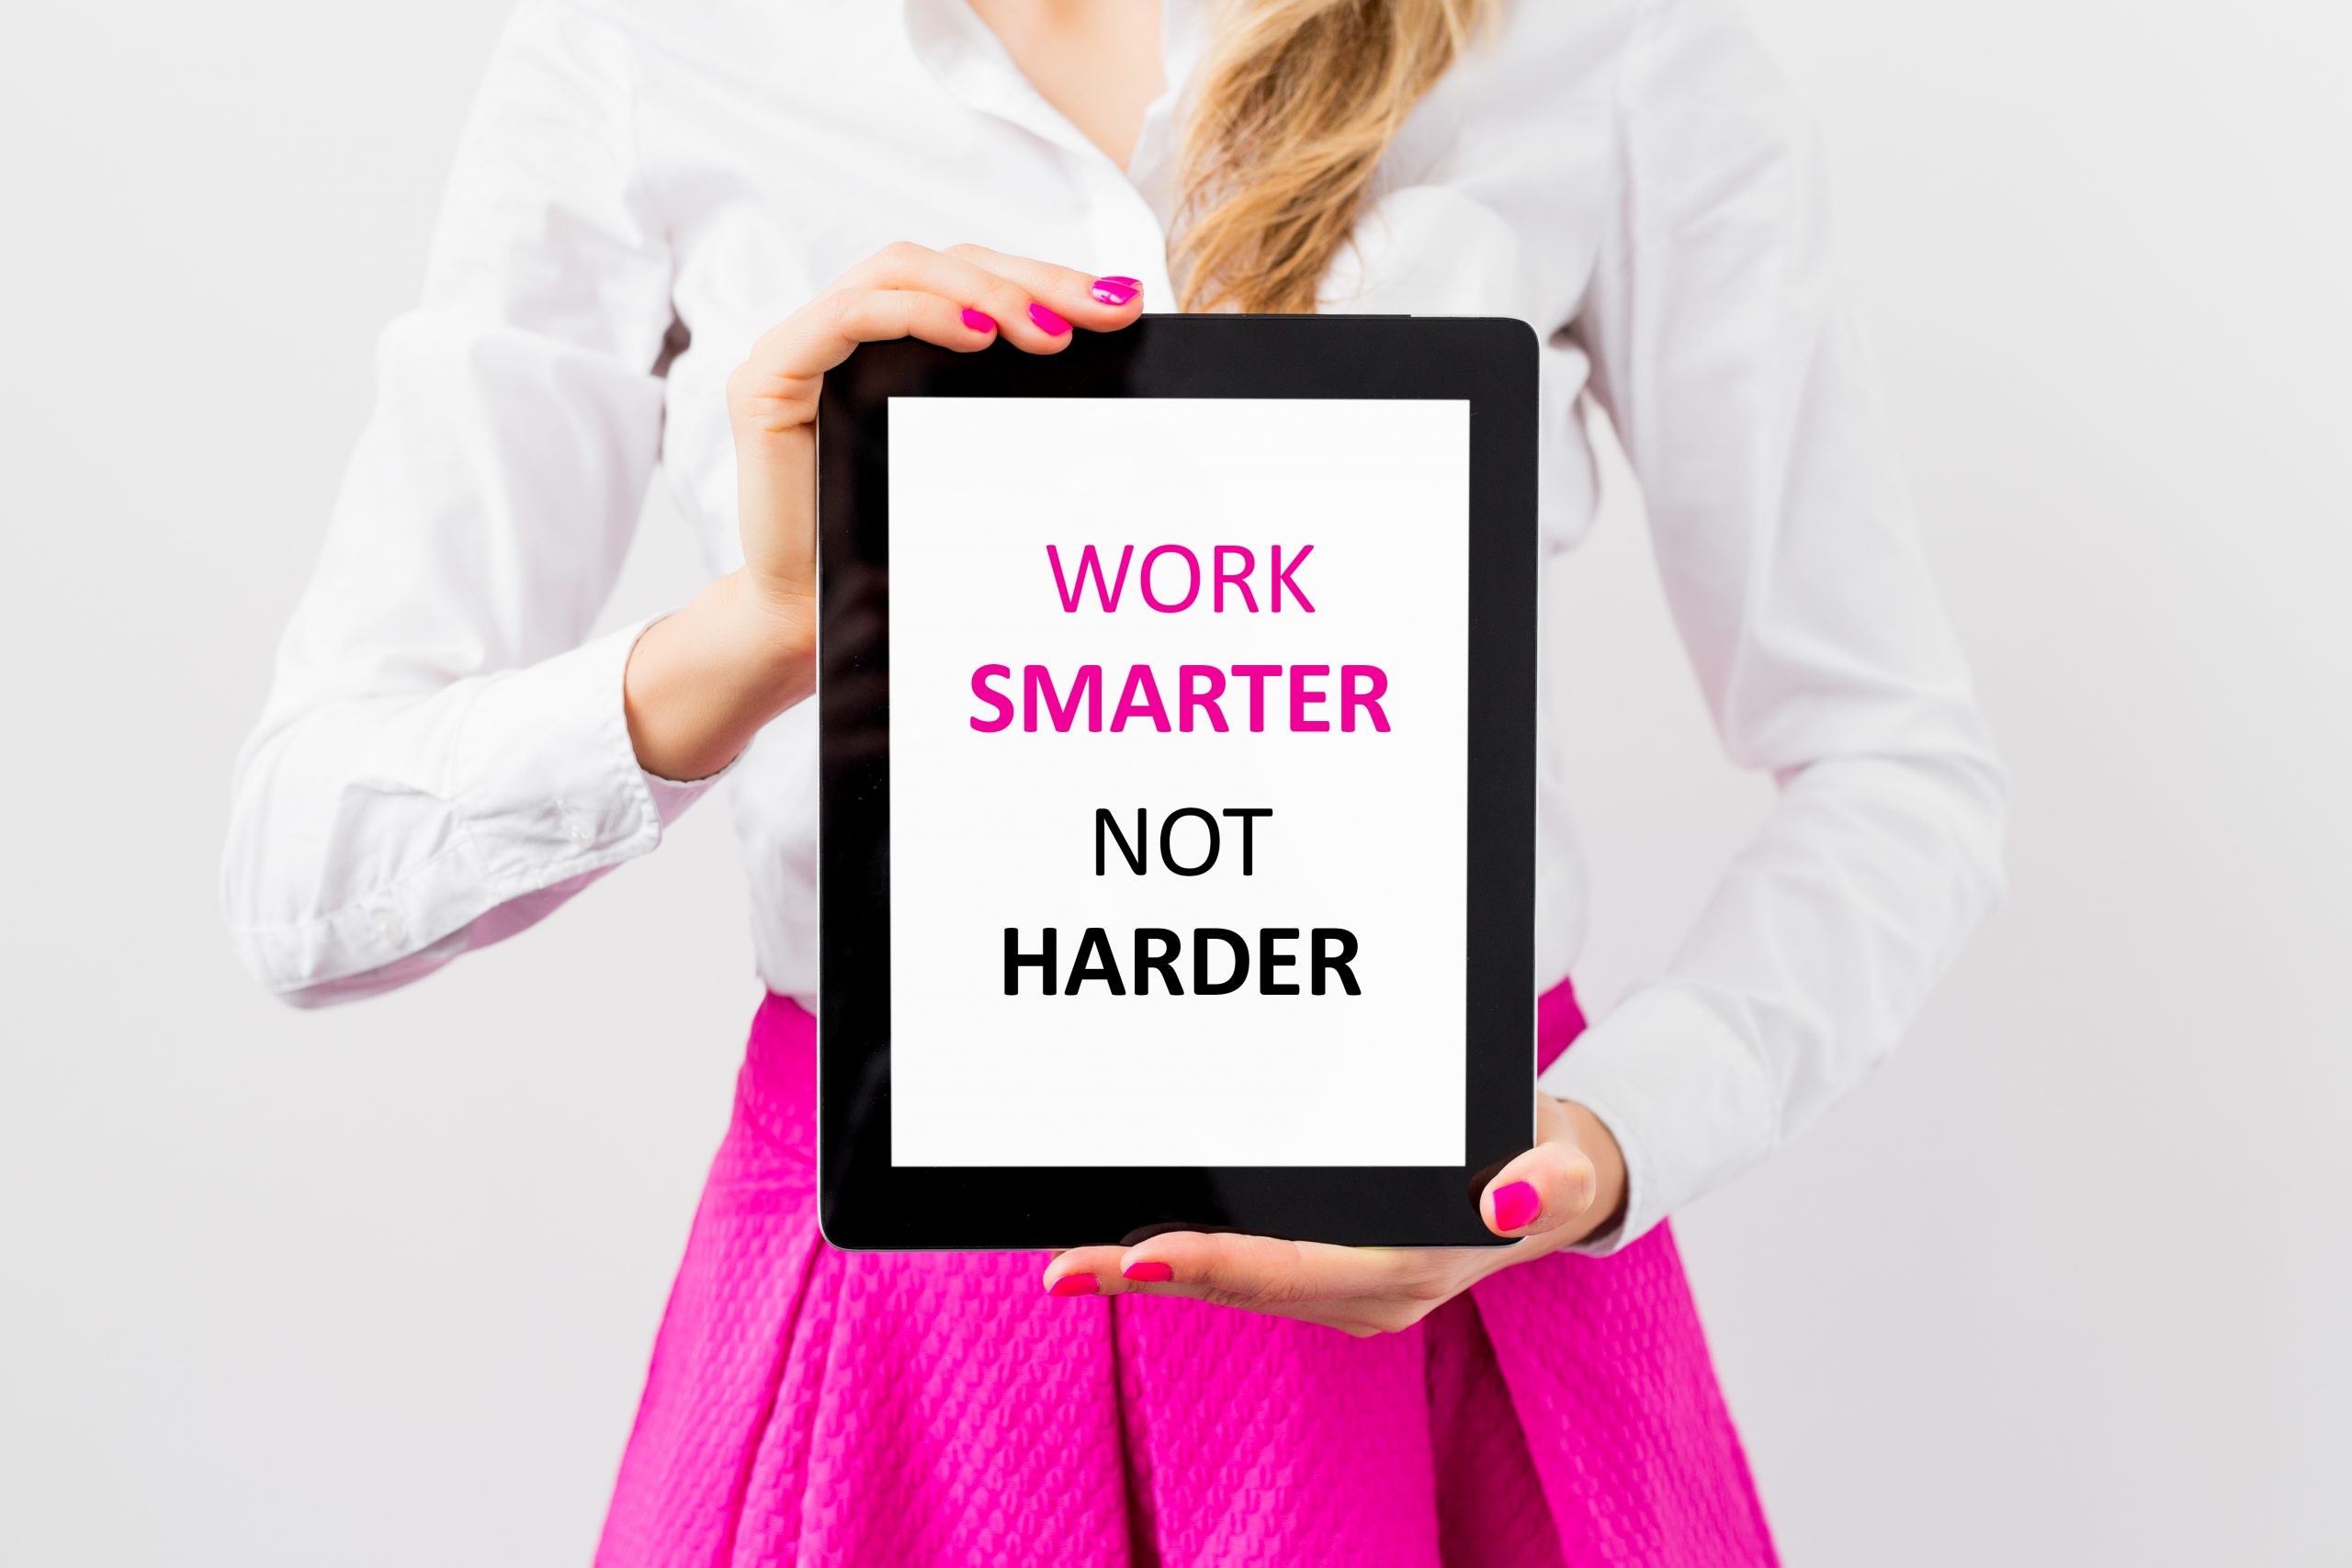 woman holding a ablet saying work smarter not harder